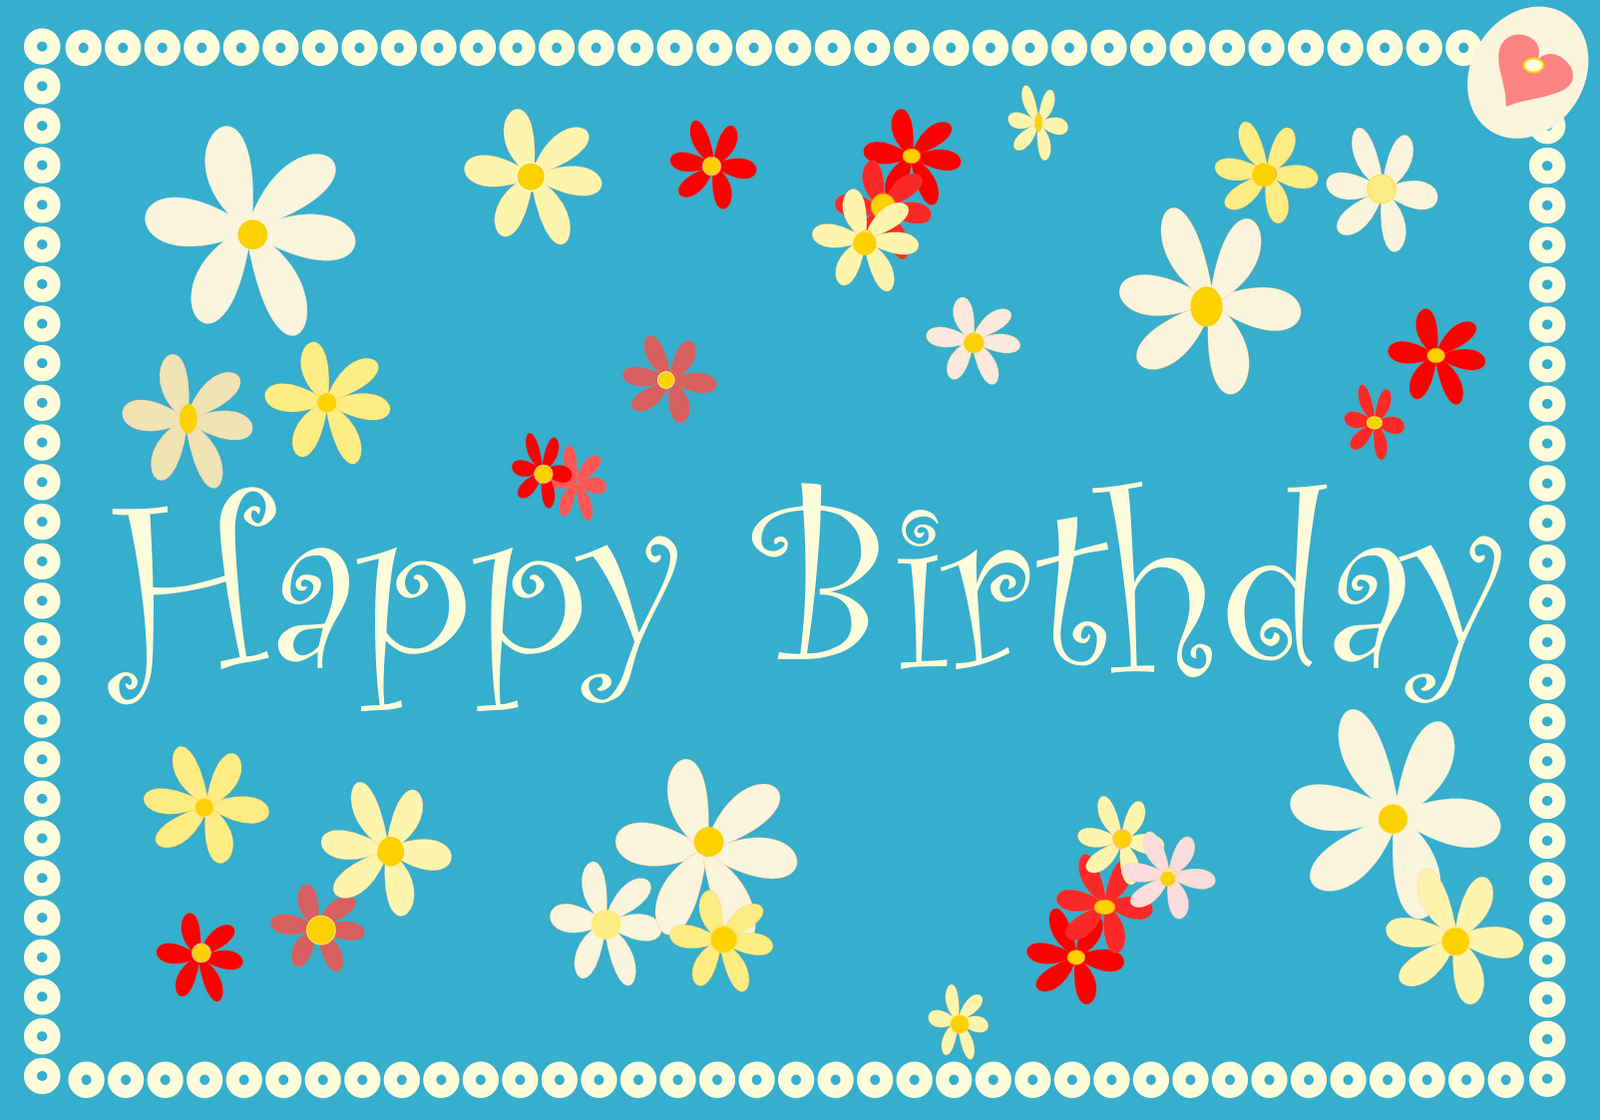 Free Downloads Happy Birthday Images Lovely Printable Birthday Cards Birthday